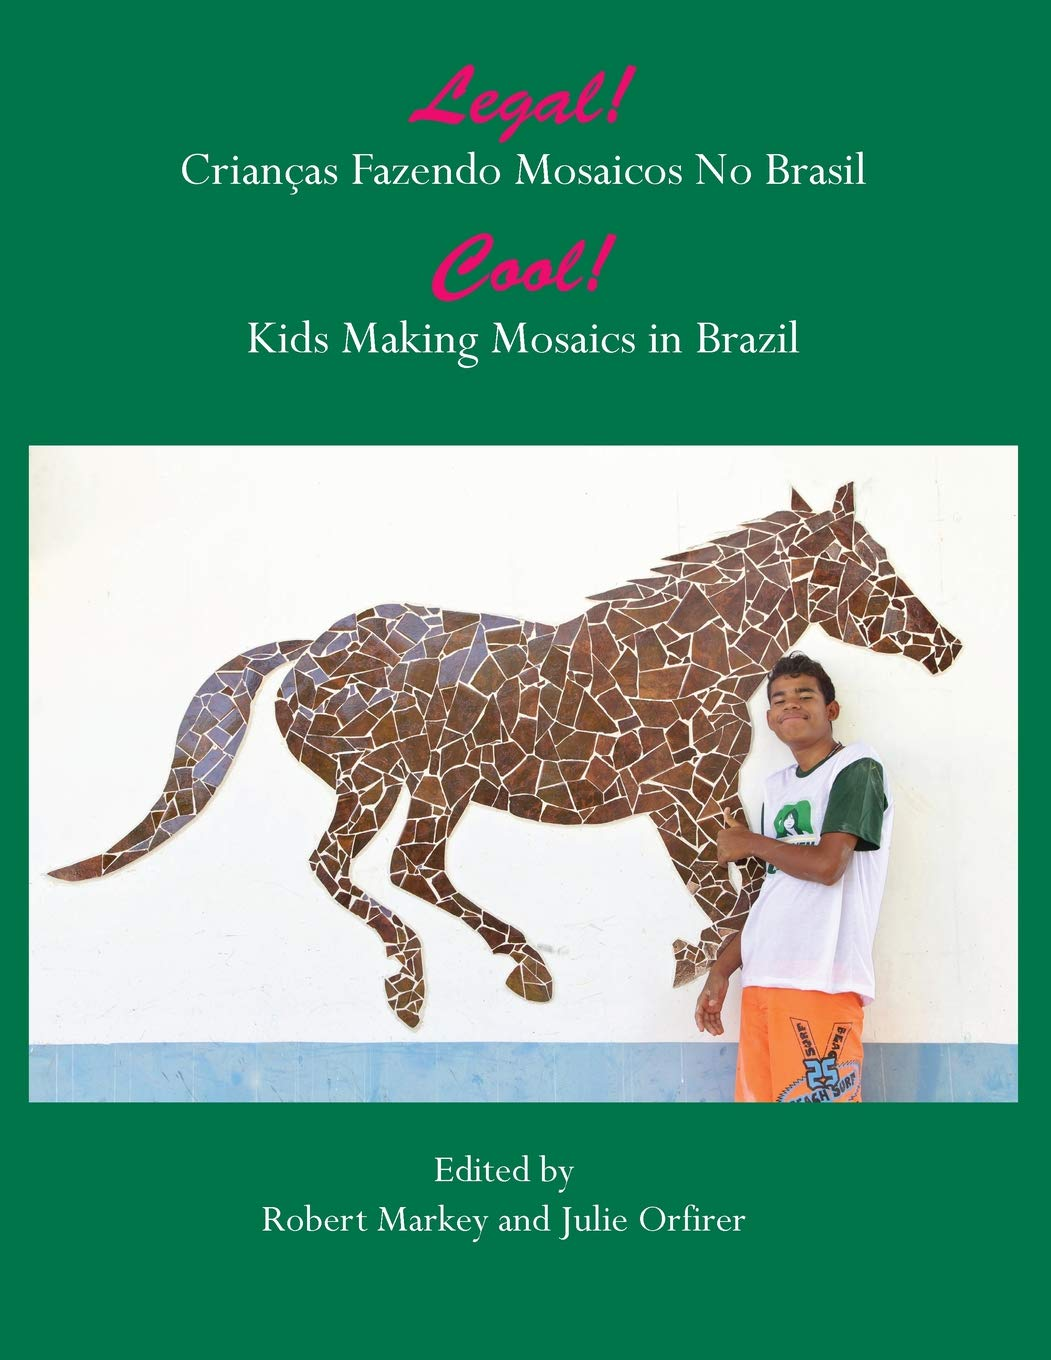 Download Cool! Kids Making Mosaics in Brazil: Legal! Crianças Fazendo Mosaics No Brasil (English and Portuguese Edition) ebook